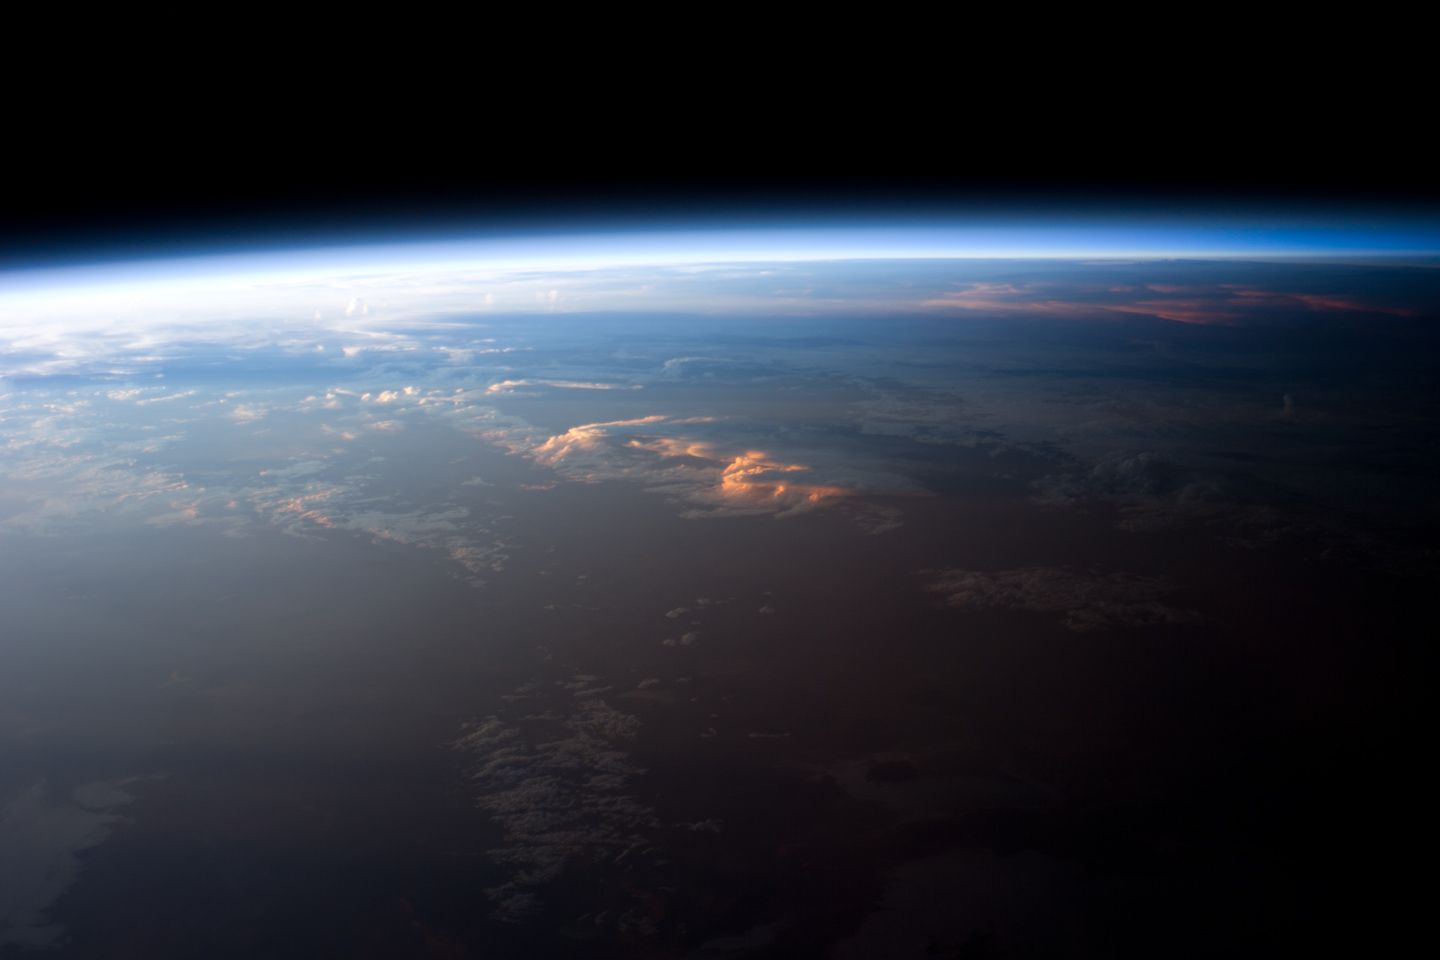 3 Cool Pictures Cool Space Picture Cool Space Backgrounds Space Backgrounds Space Pictures